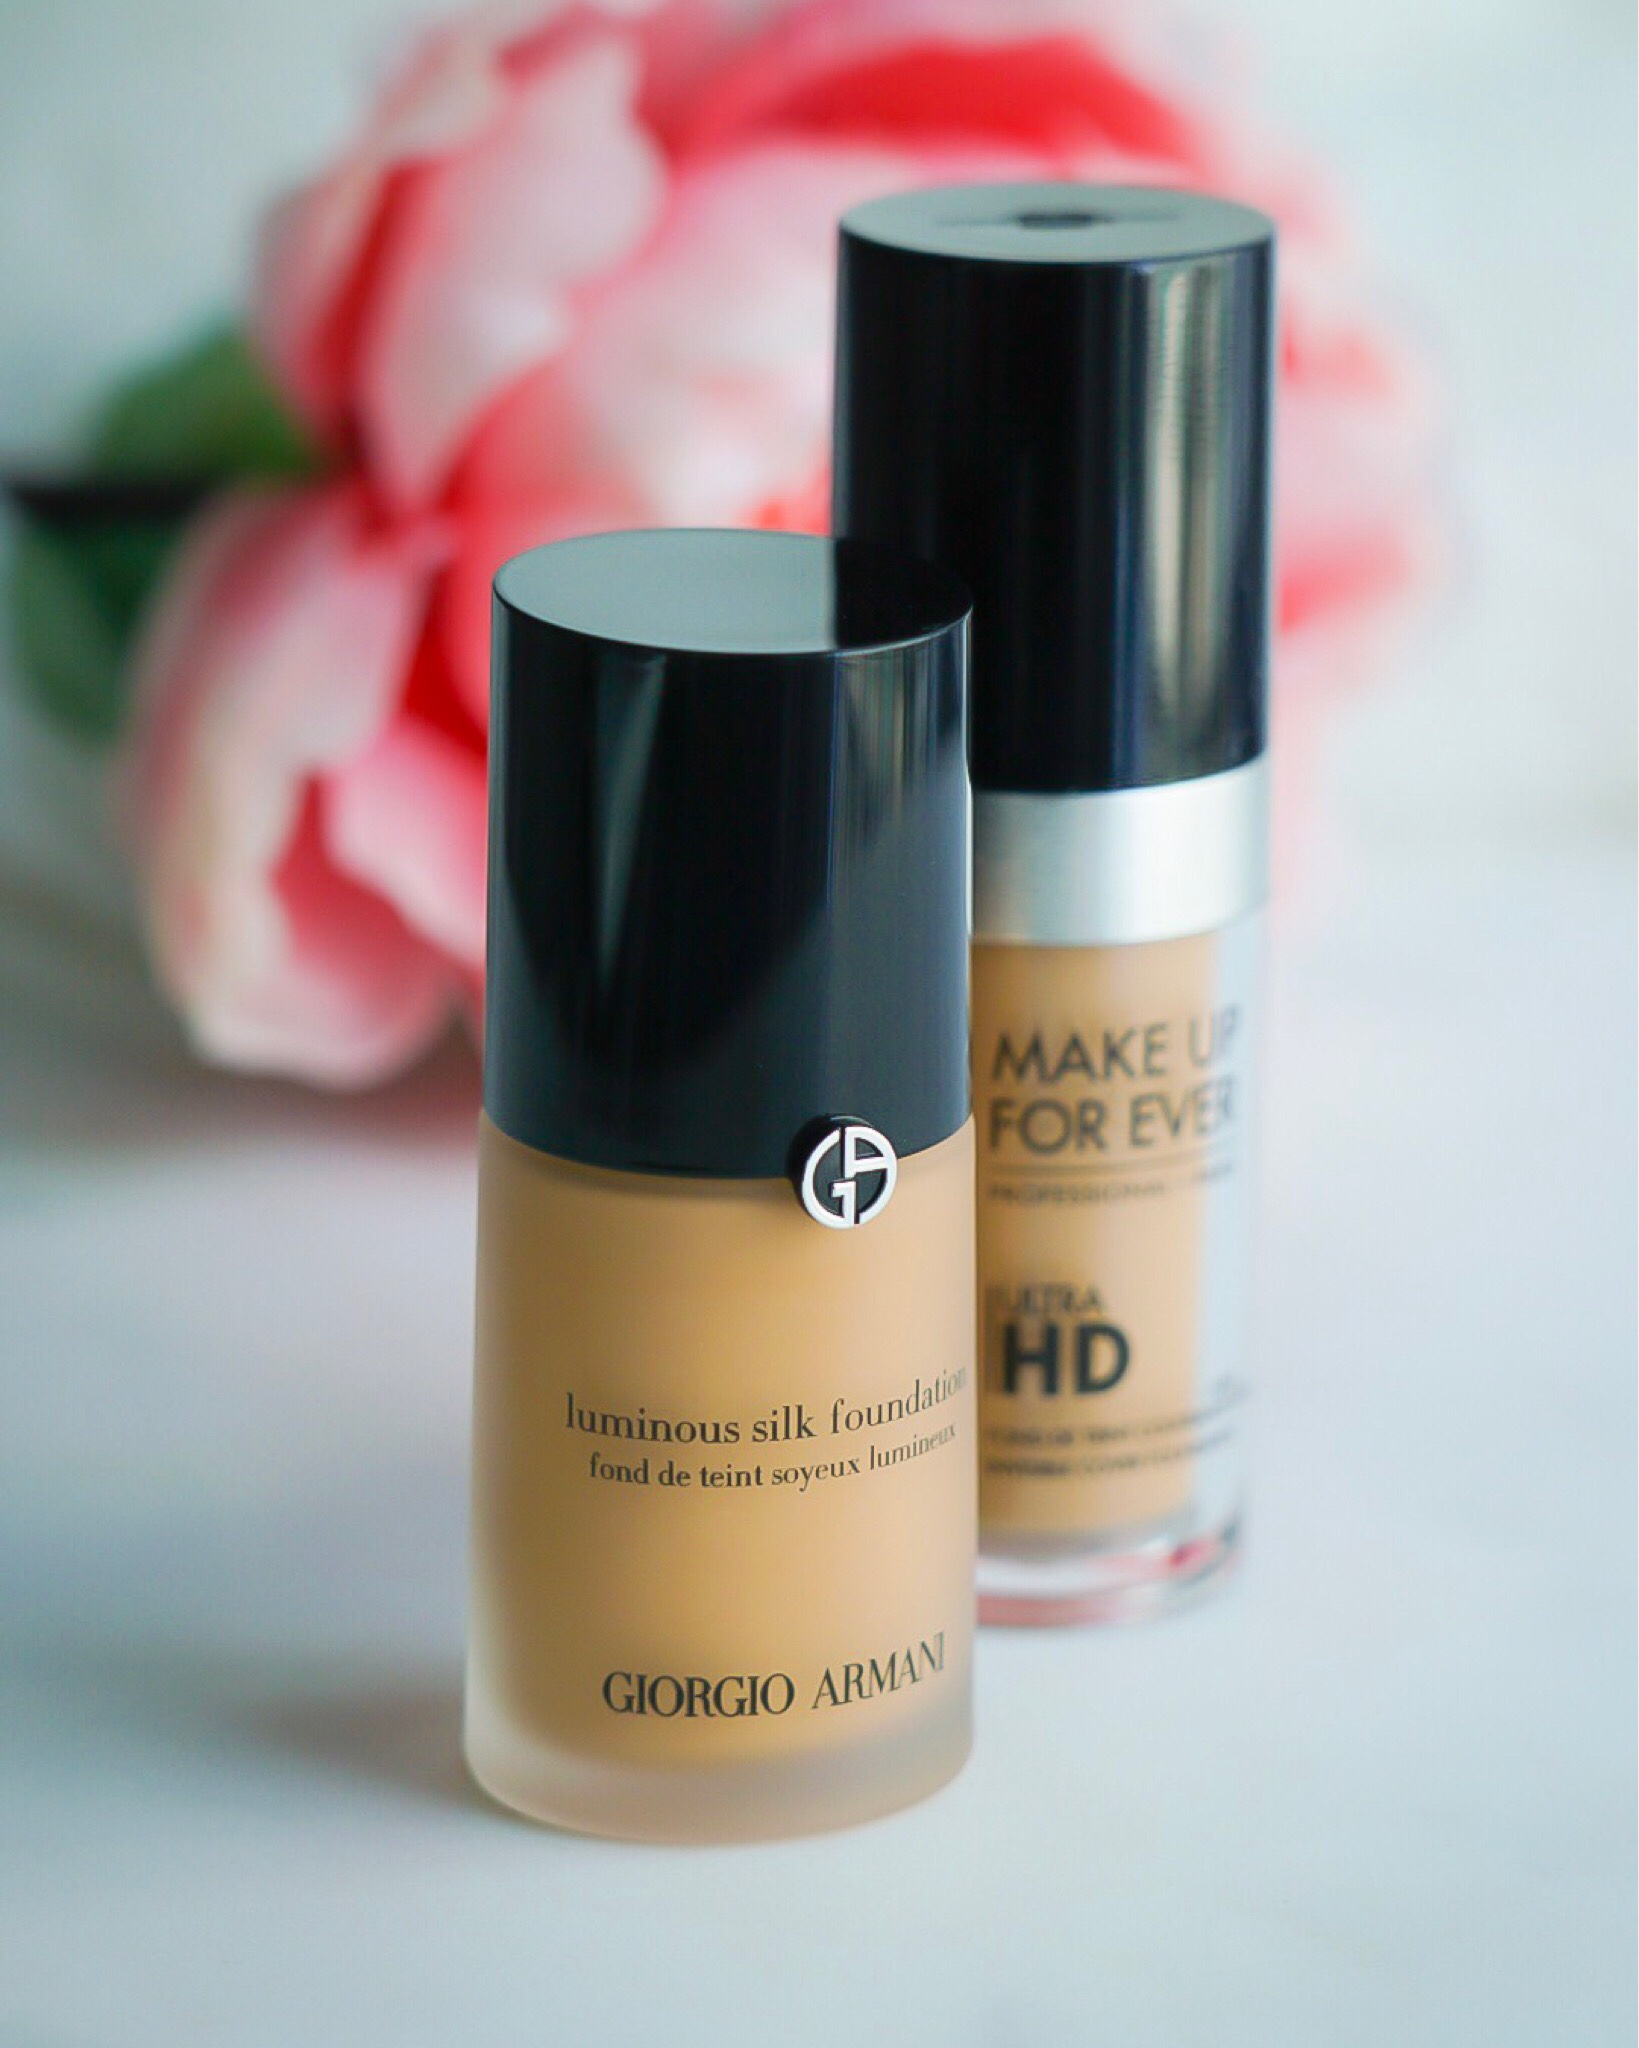 My all time favorite foundations